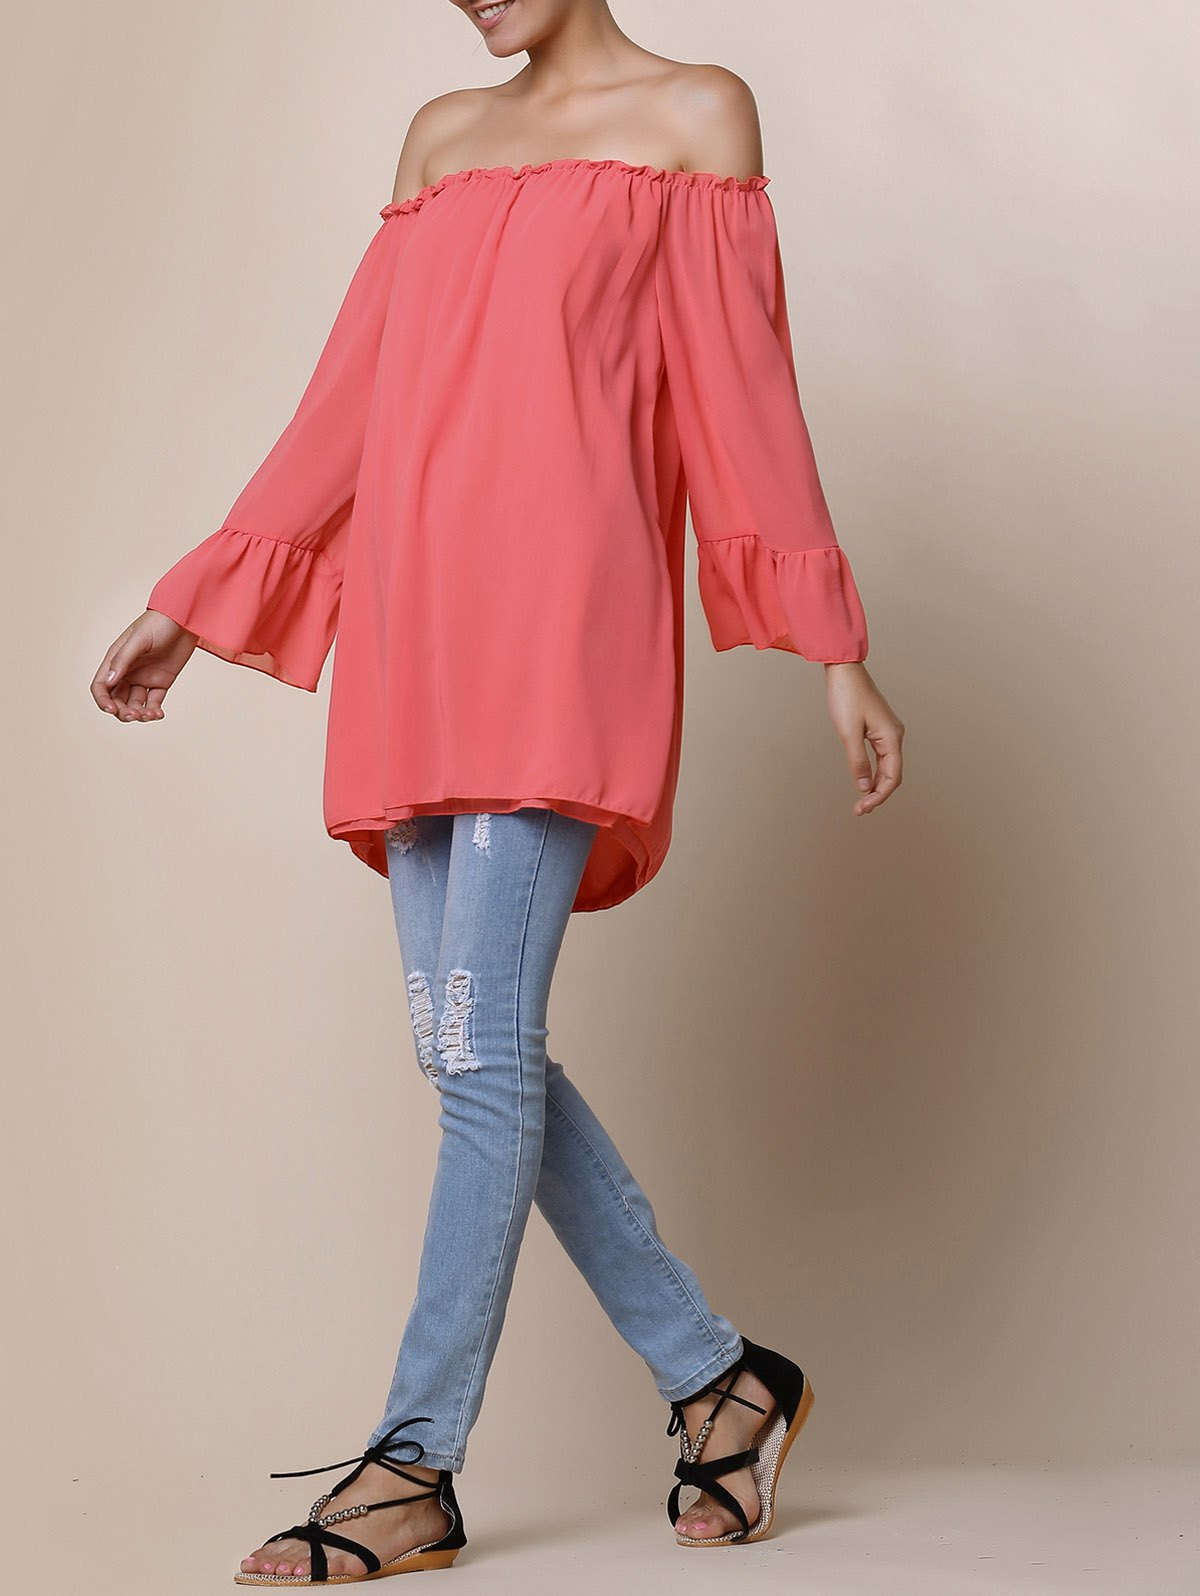 Endearing Off-The-Shoulder Pure Color Ruffled Blouse For Women